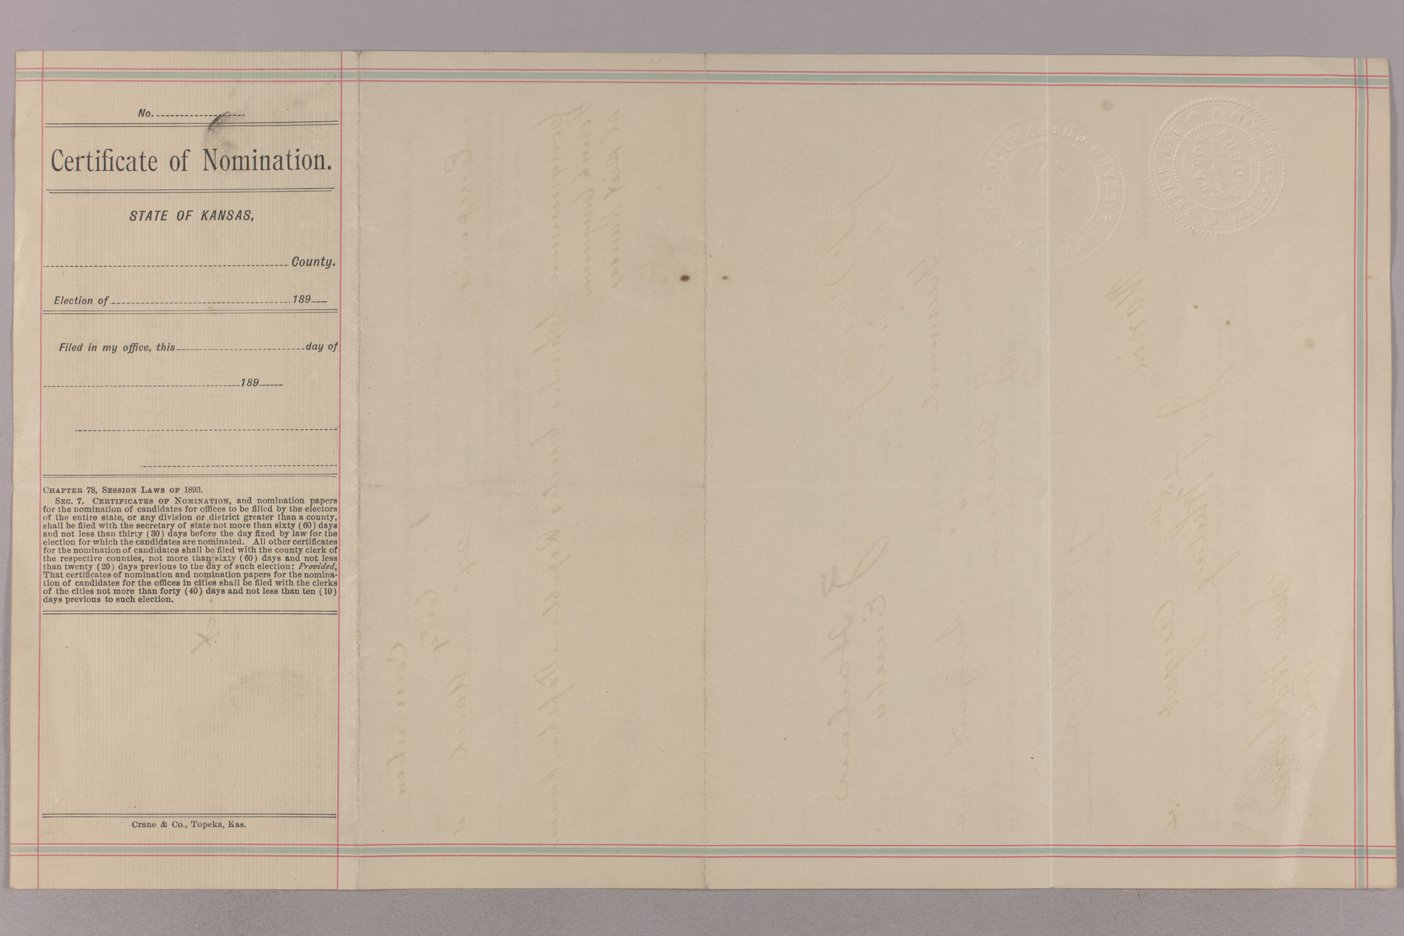 Charles Curits correspondence, 1894 - 31 Certificate of Nomination Distsrict Offices